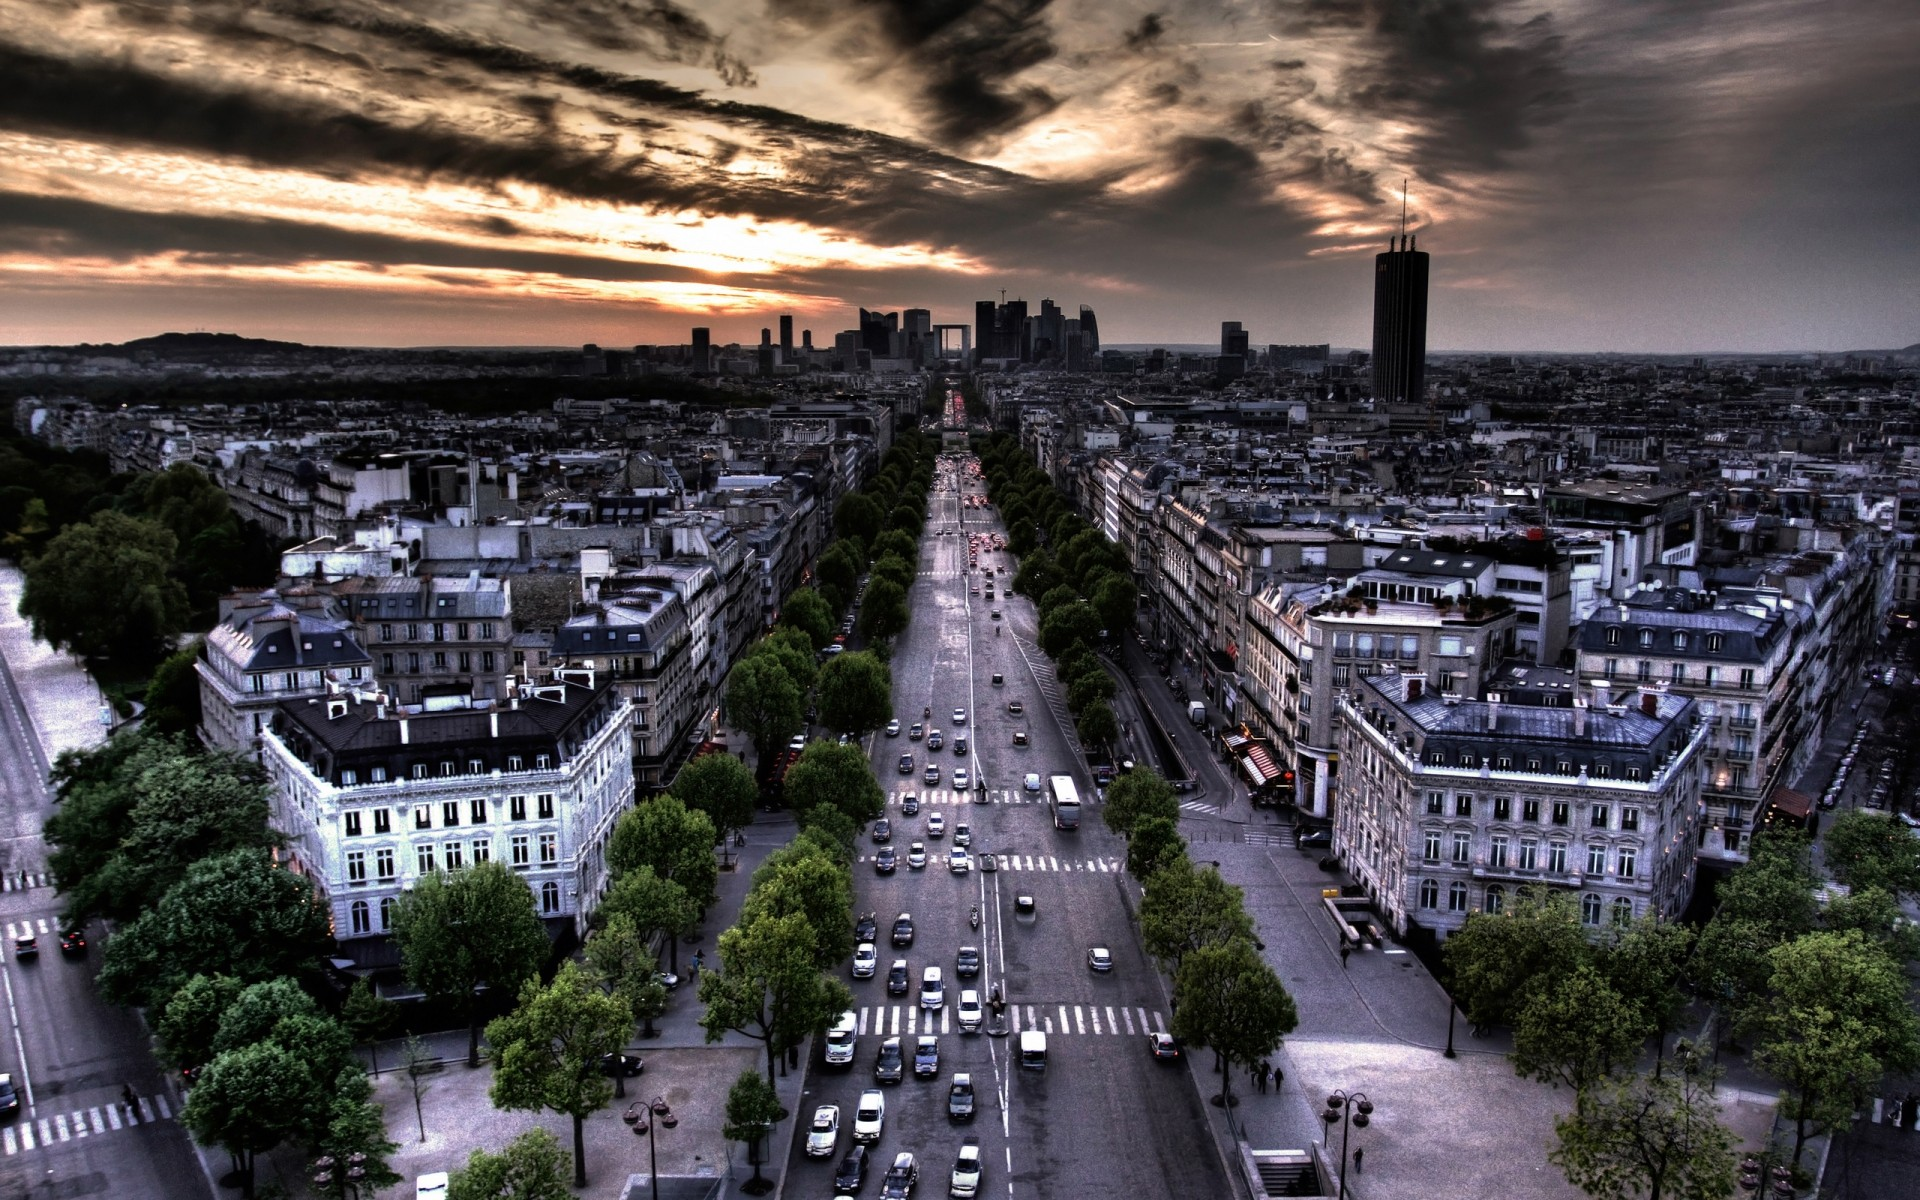 a view on the city of paris In paris in the park of villette, discover the cité des sciences and industry and its interactives exhibitions about innovation, space, the universe, transports, mathematics and soundsexperiment amazing hands-on activities.